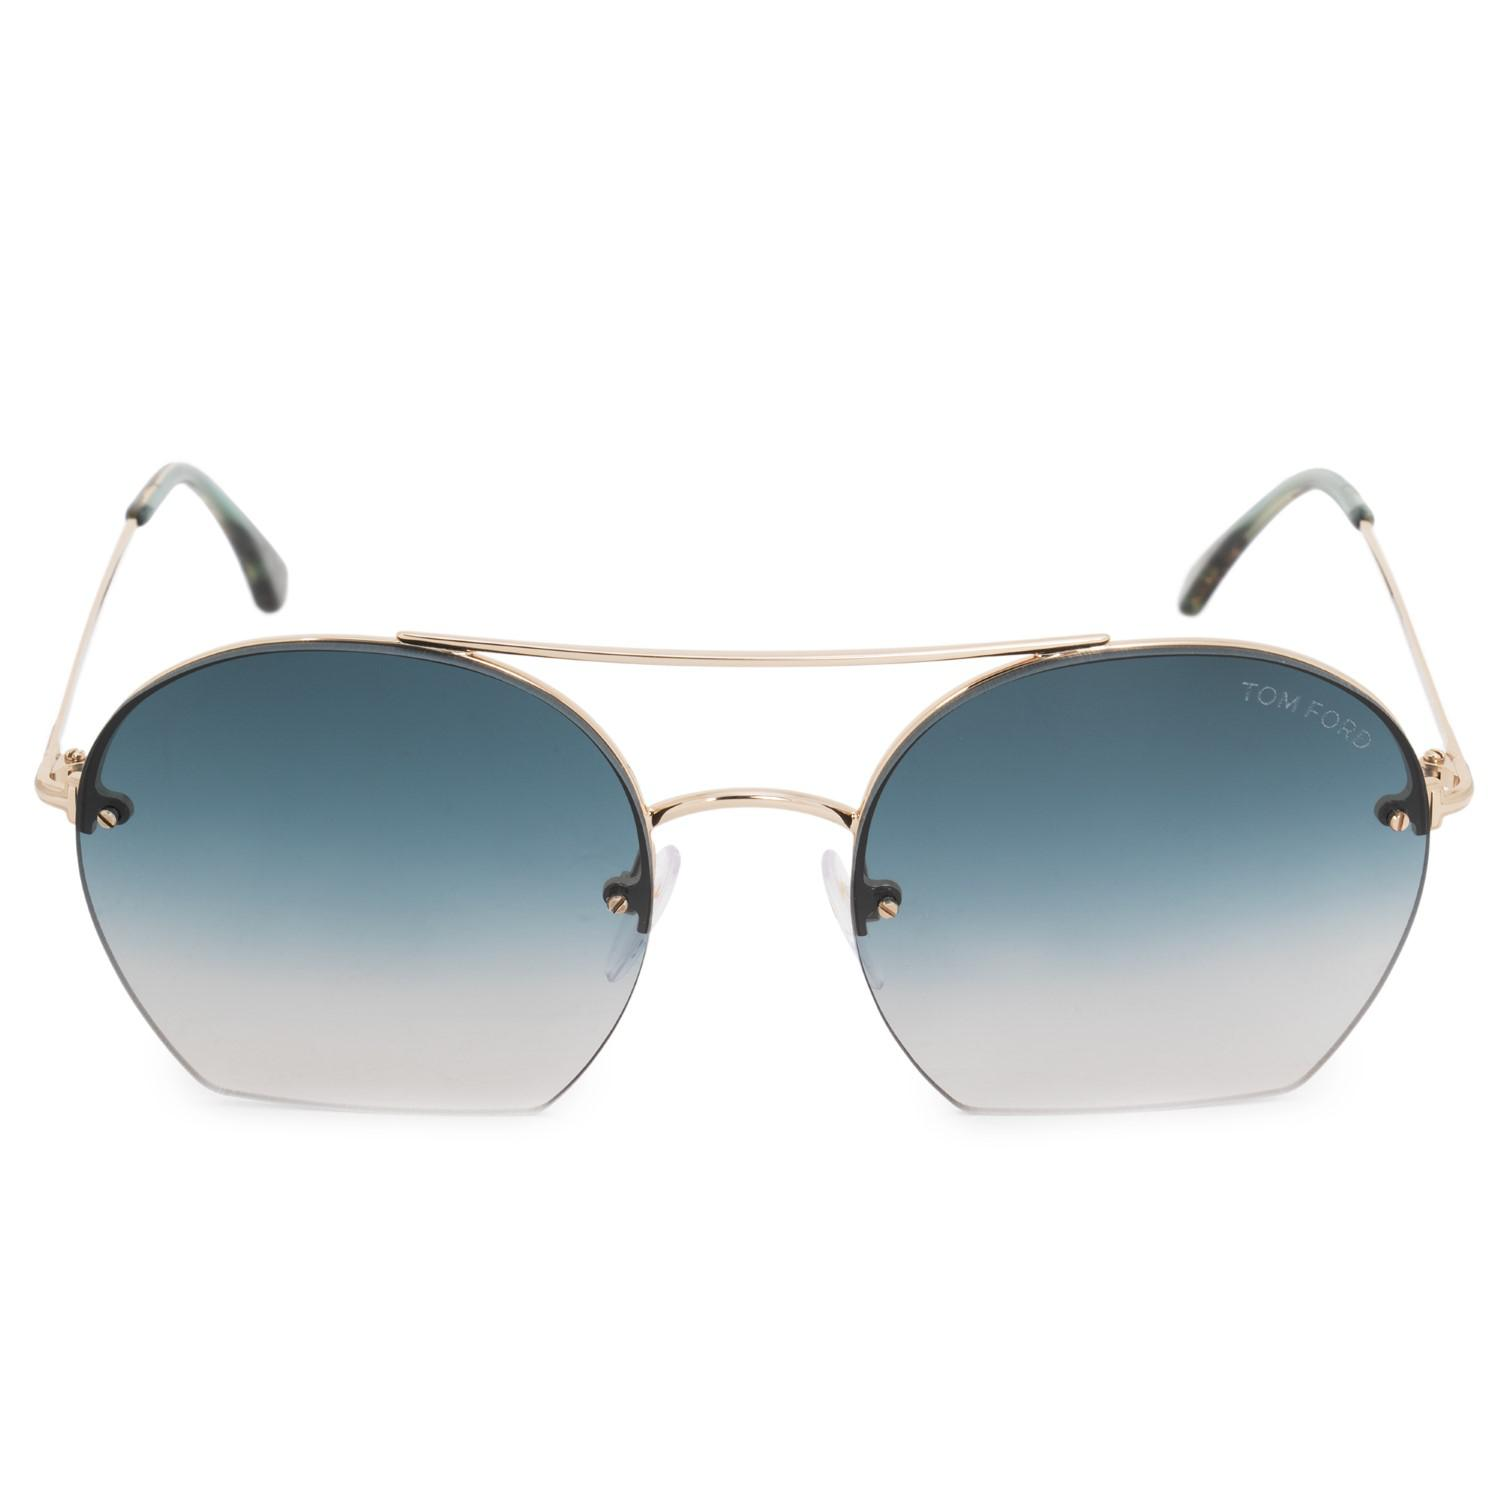 c056fe1053 Lyst - Tom Ford Antonia Tf506 Tf 506 28w Fashion Pilot Sunglasses 55mm